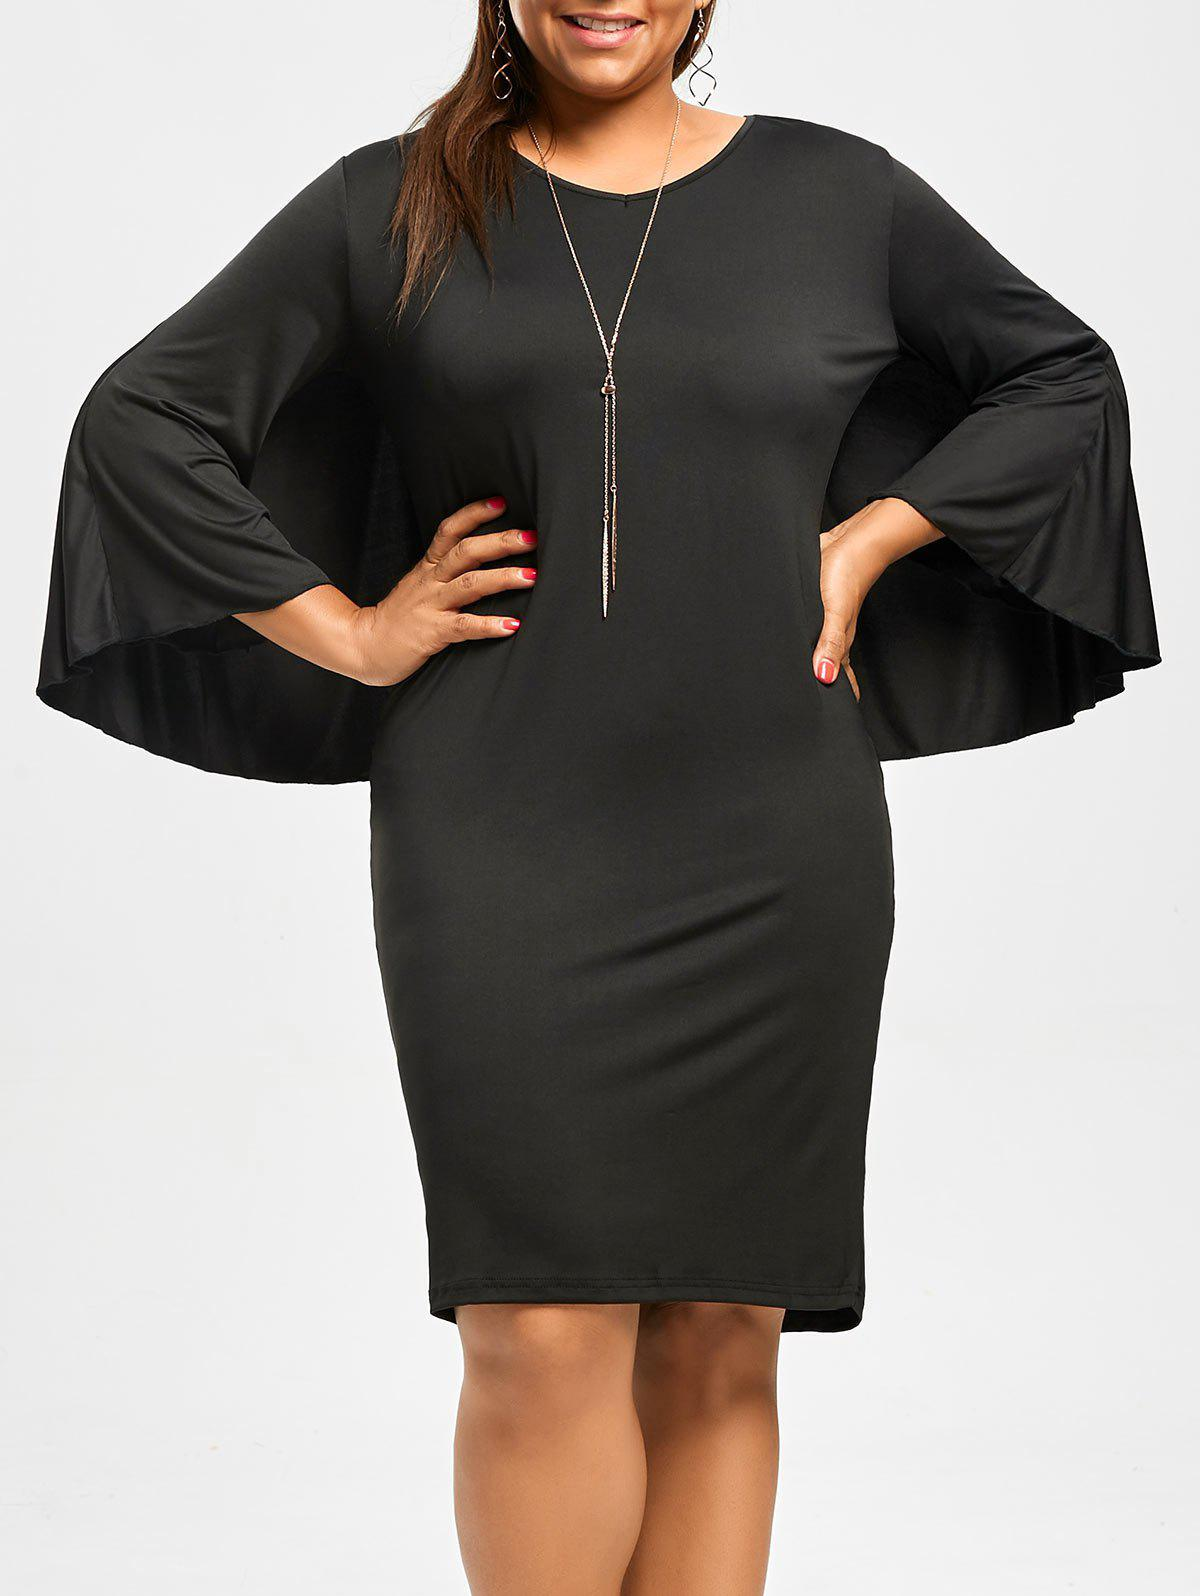 Plus Size V-Neck Modest Work Bodycon Caped DressWOMEN<br><br>Size: 2XL; Color: BLACK; Style: Sexy &amp; Club; Material: Polyester; Silhouette: Sheath; Dresses Length: Knee-Length; Neckline: V-Neck; Sleeve Length: 3/4 Length Sleeves; Pattern Type: Solid; With Belt: No; Season: Fall; Weight: 0.290kg; Package Contents: 1 x Dress;